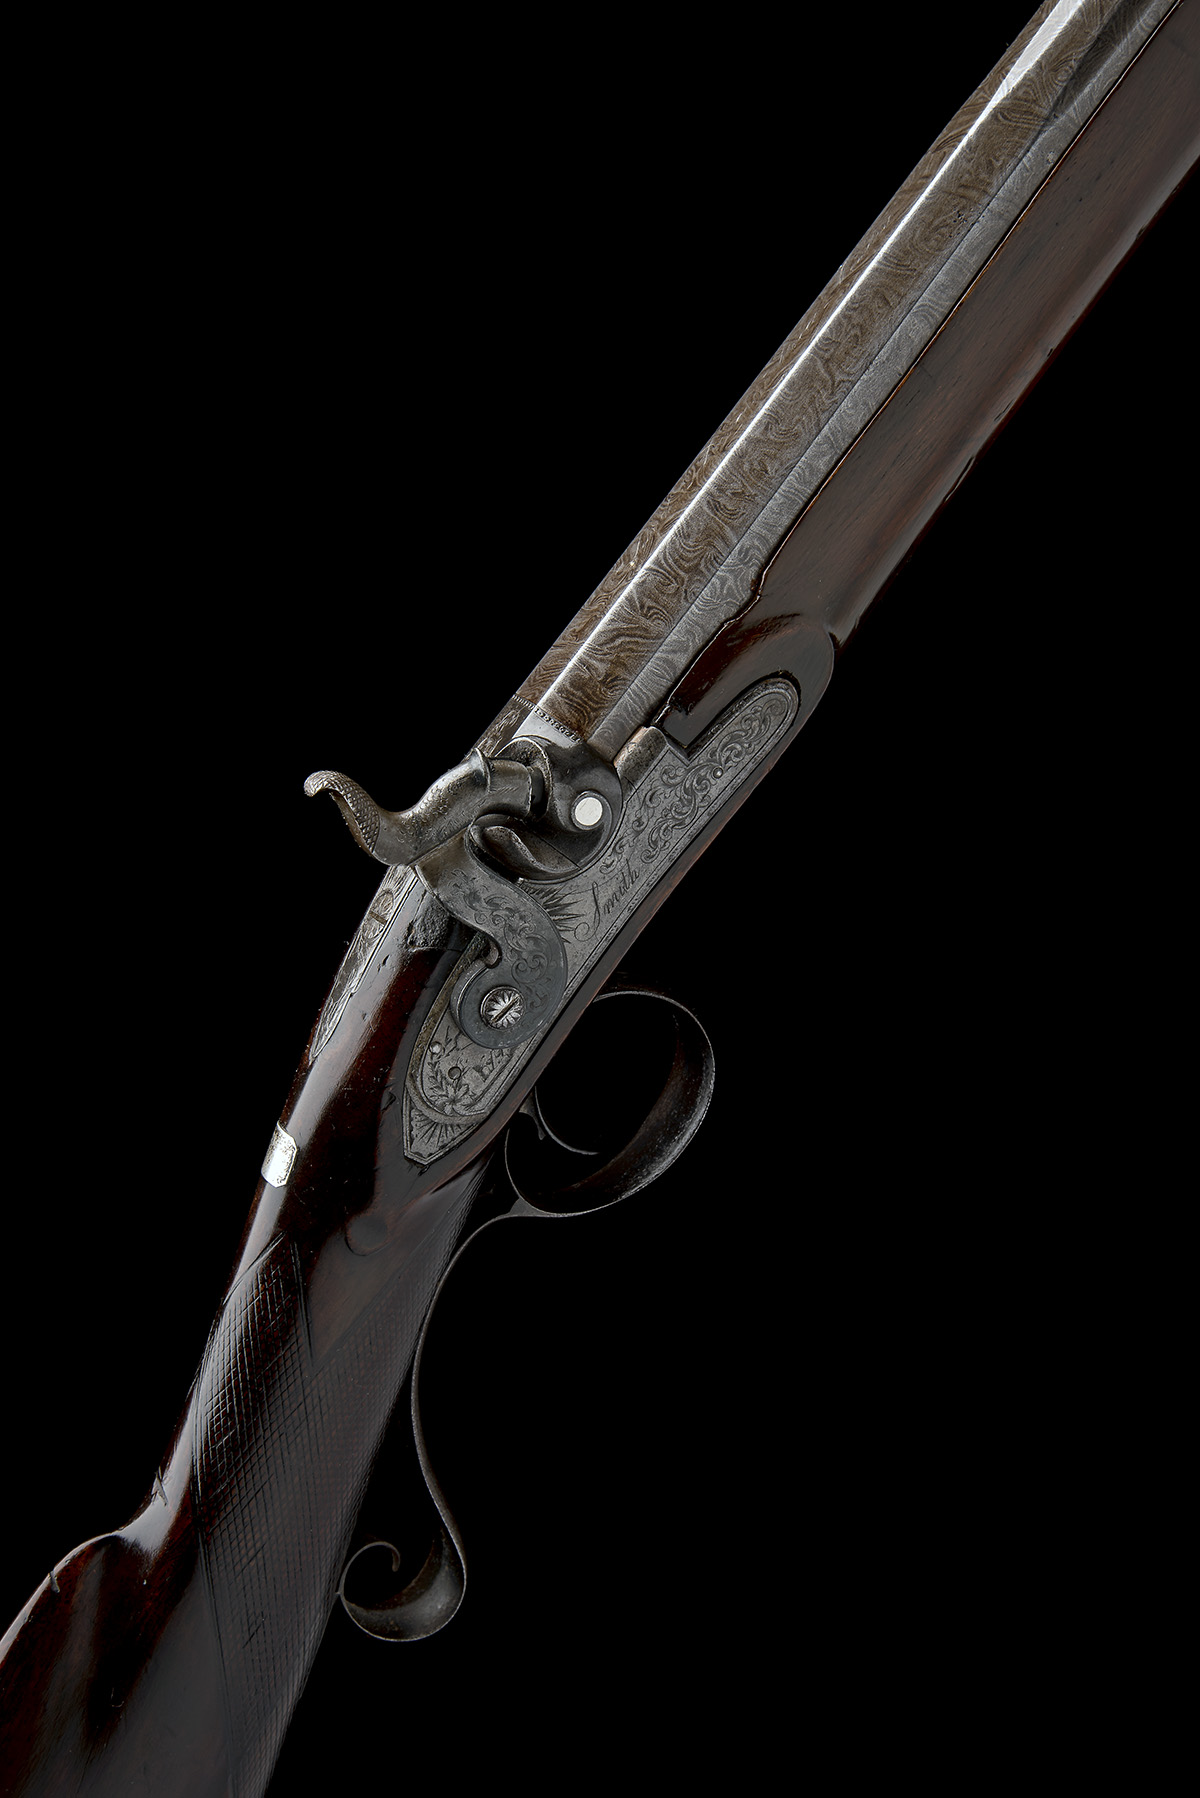 SMITH, LONDON A 12-BORE PERCUSSION SINGLE-BARRELLED SPORTING-GUN, no visible serial number, circa